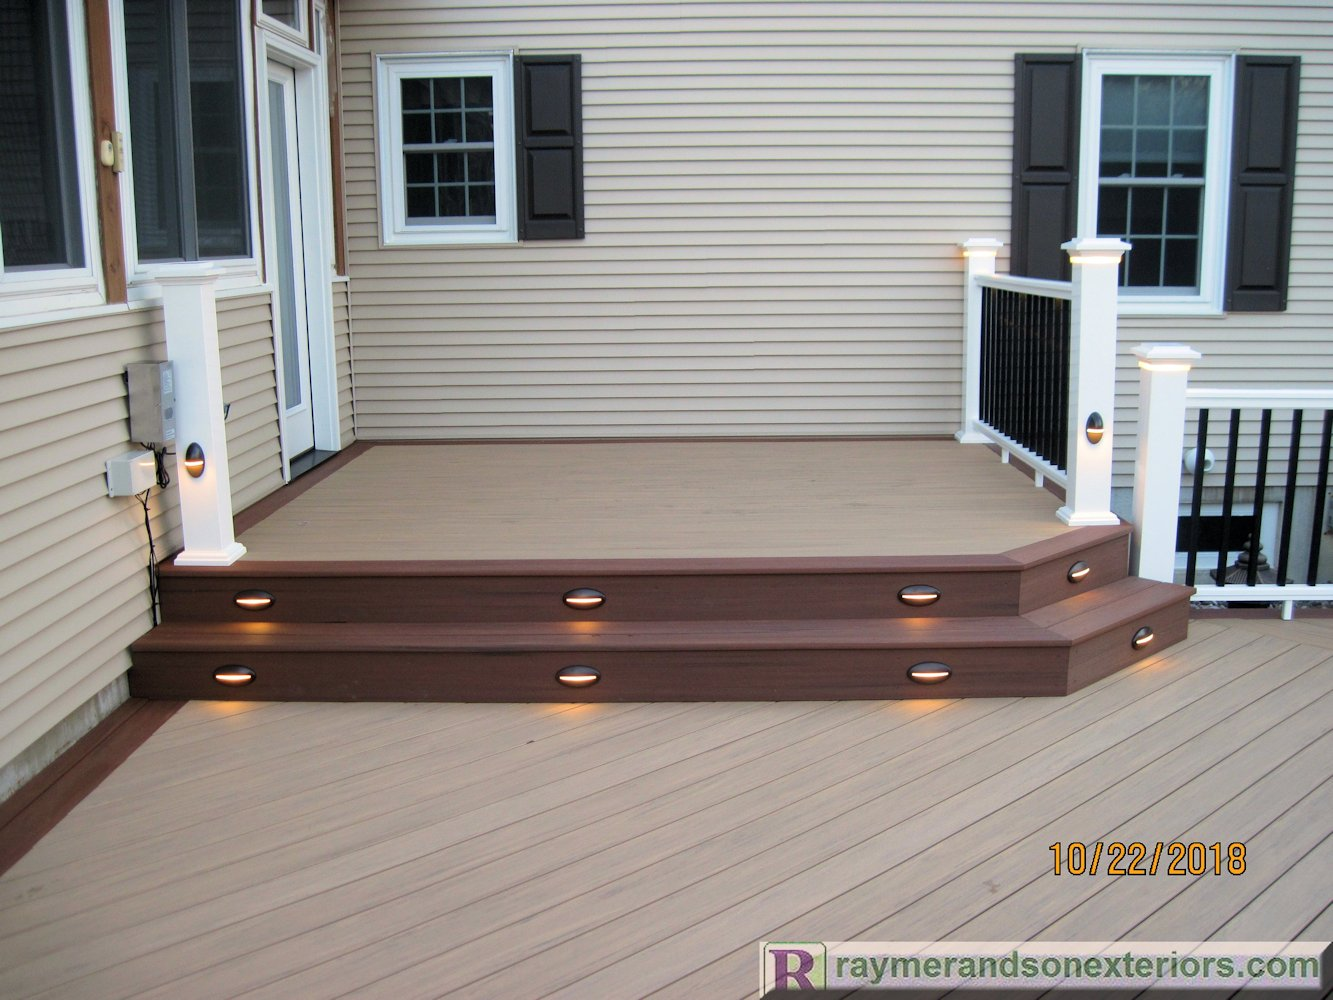 Rsxeteriors-Azek-Vinyl-Deck-LED-Lights-Turbotville-Pennsylvania-7